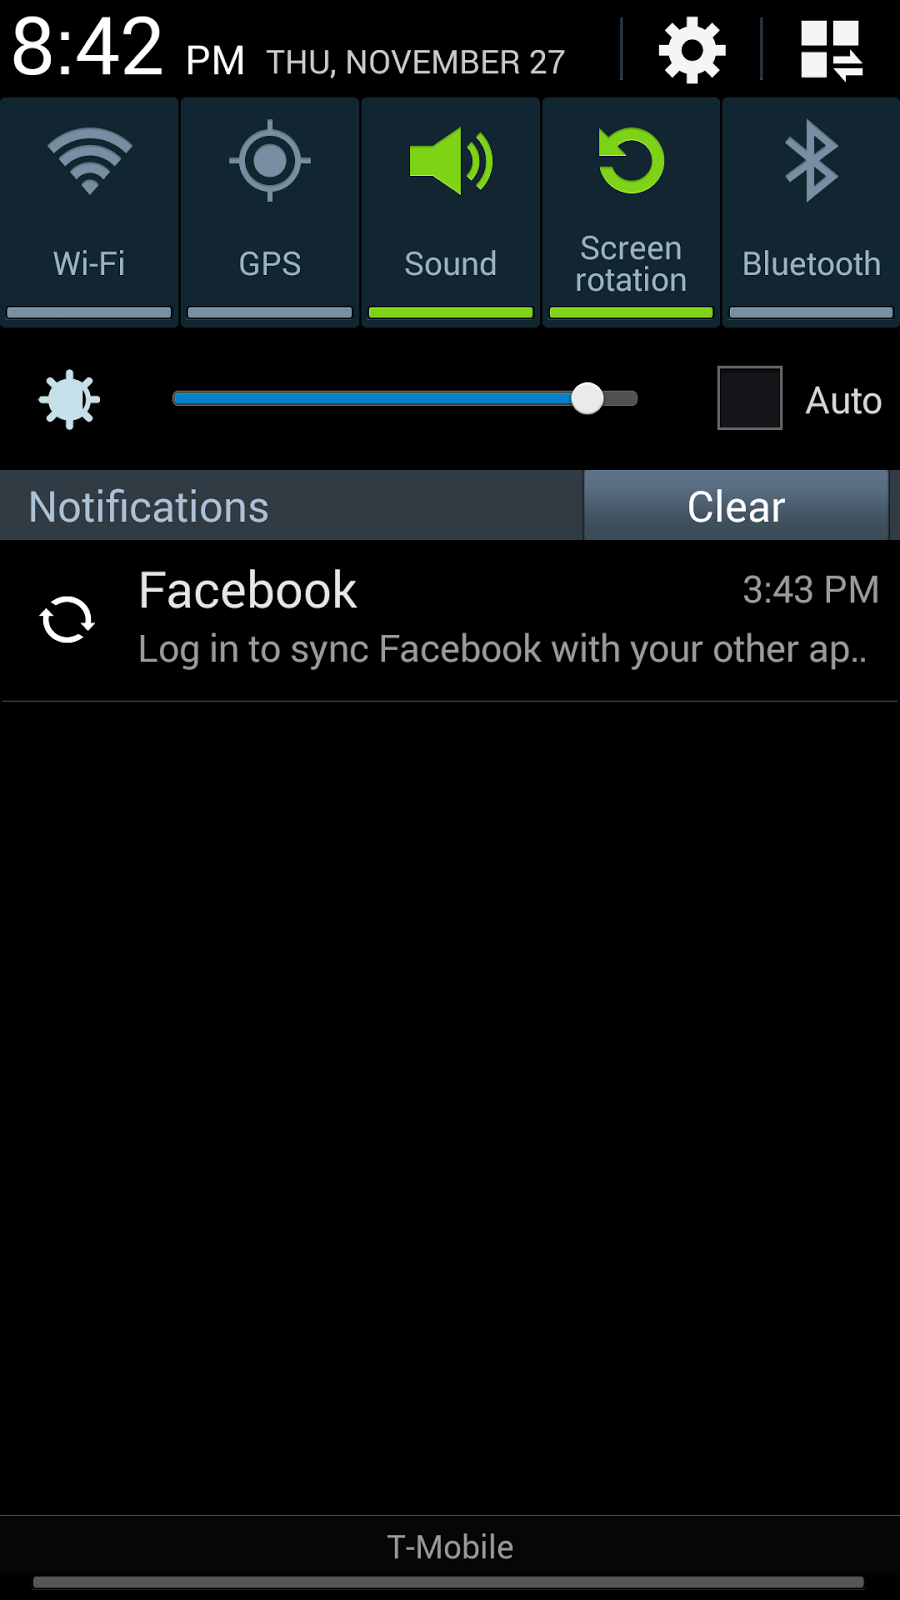 Adam's Edge: Annoying 'Log in to sync Facebook' Android